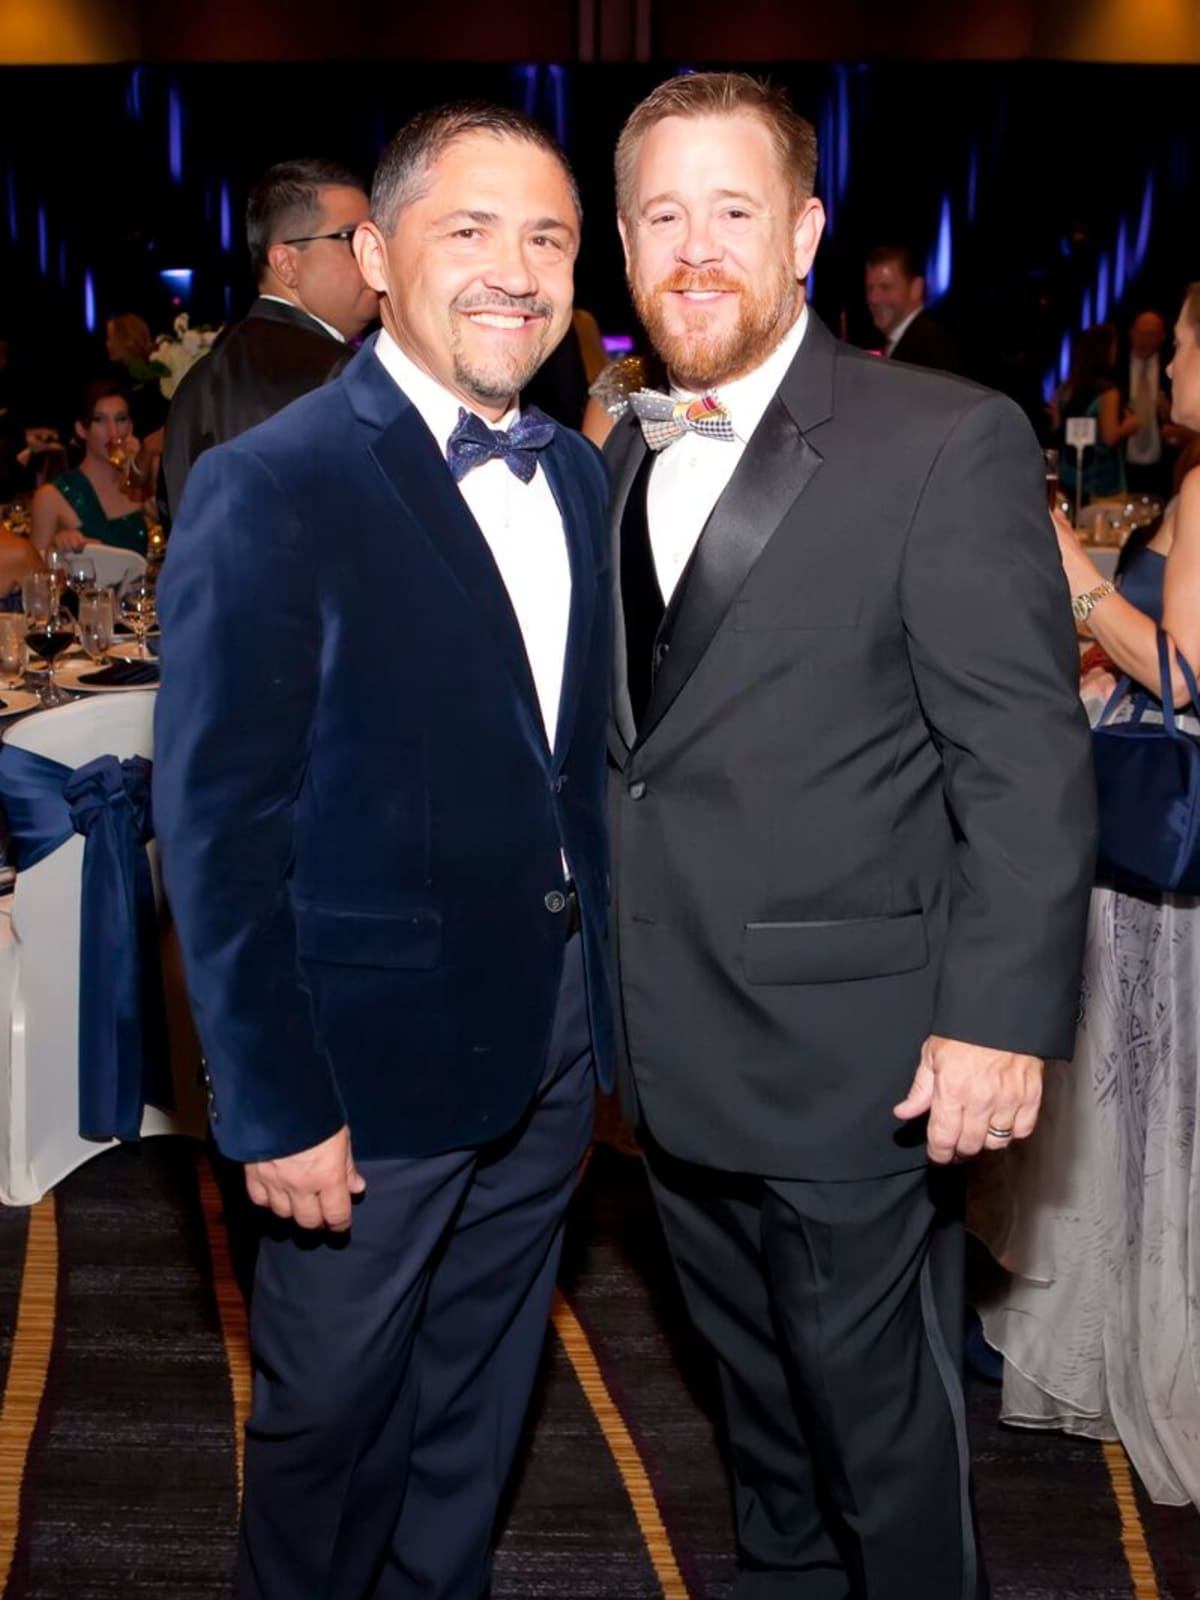 Bruce Padilla and Shelby Kibodeaux at Planned Parenthood Gala